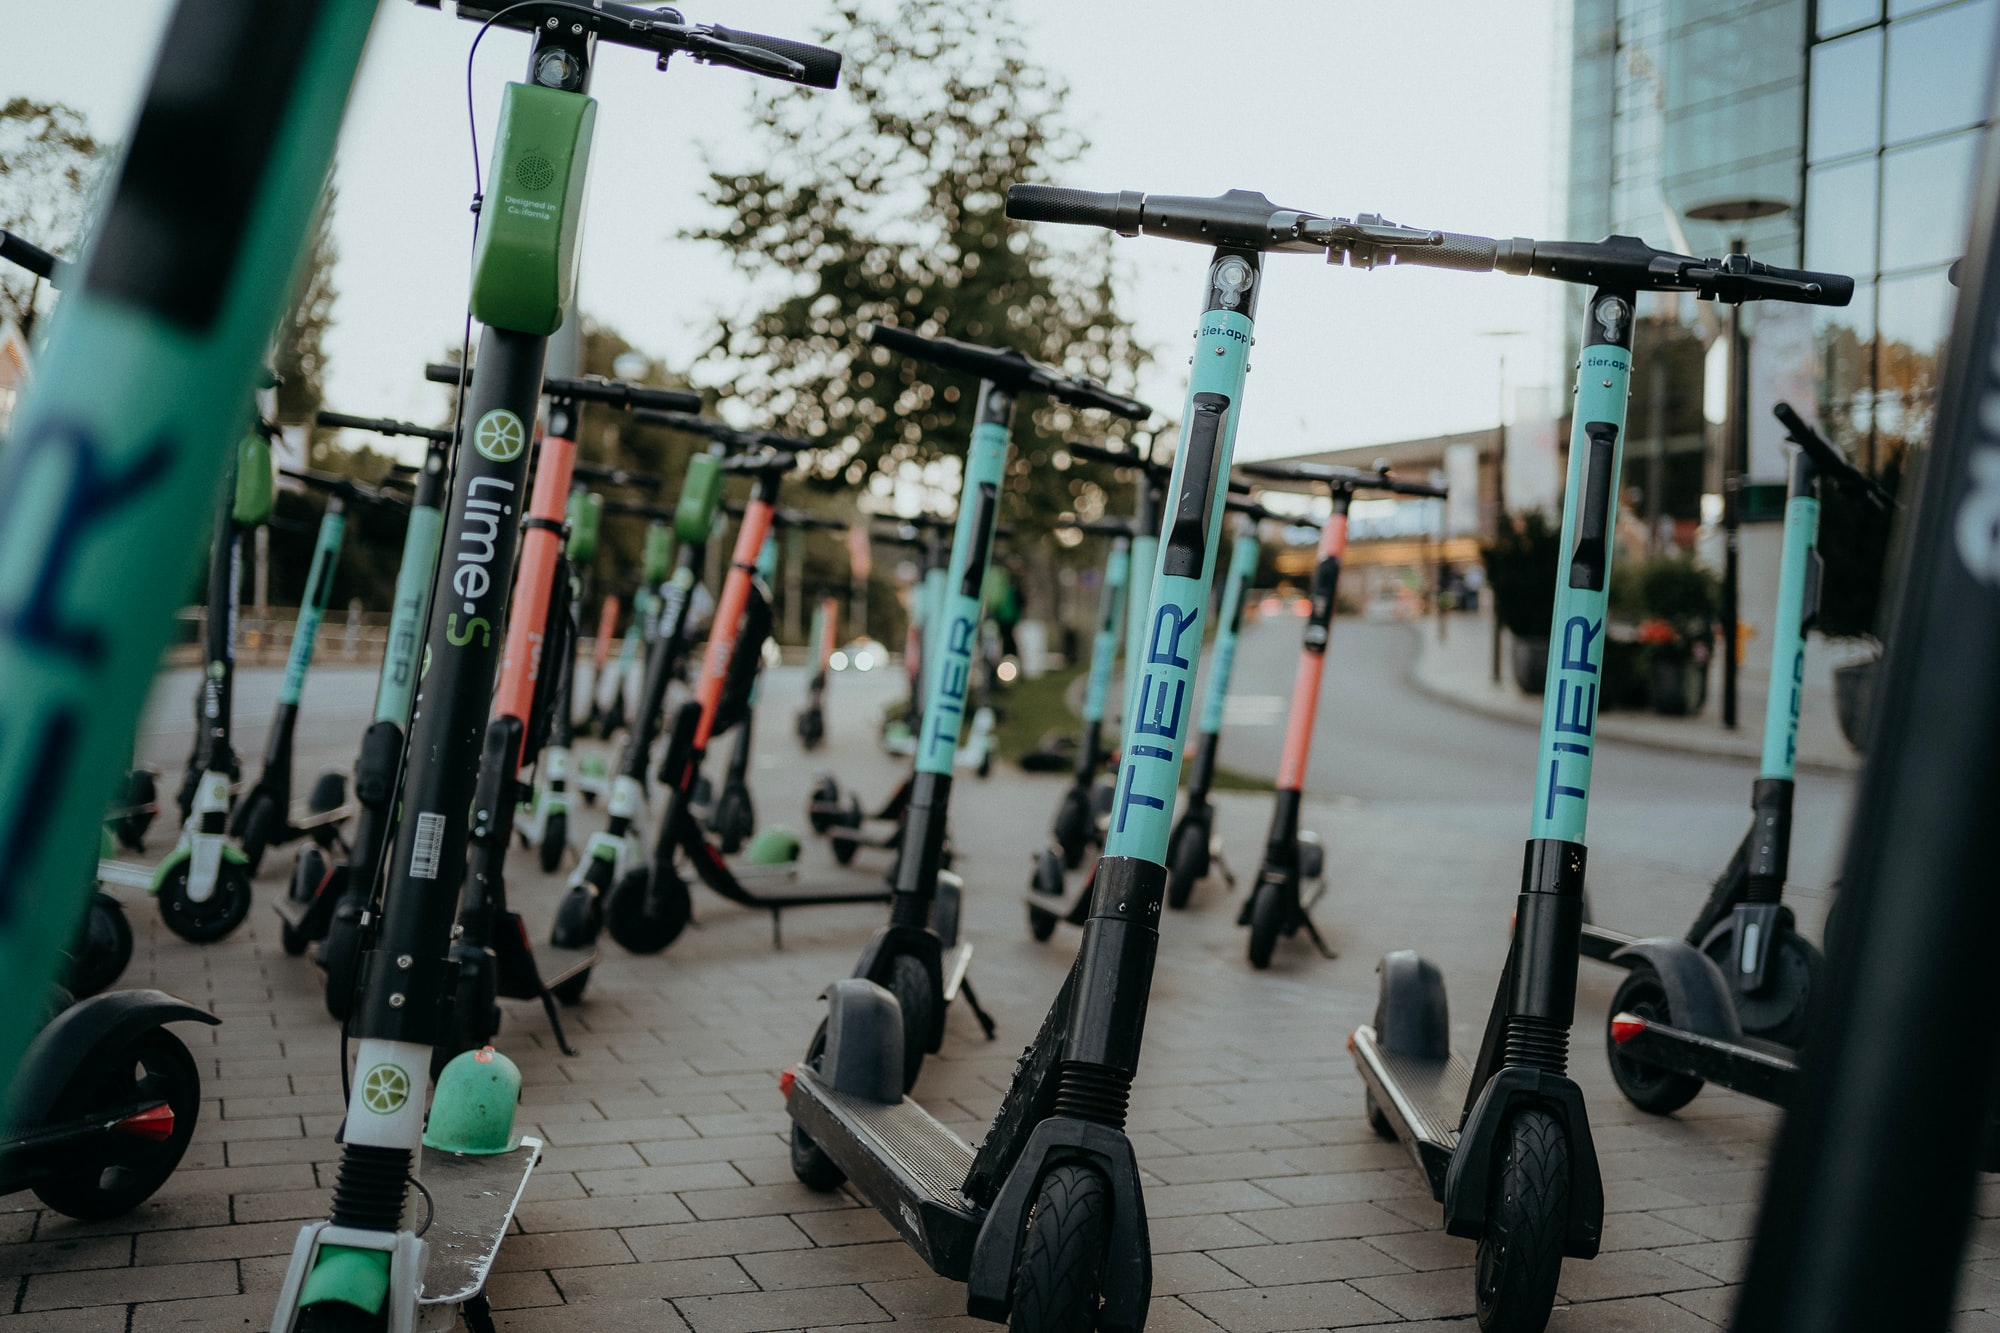 Urban mobility, electric scooter brands. Gothenburg, Sweden.